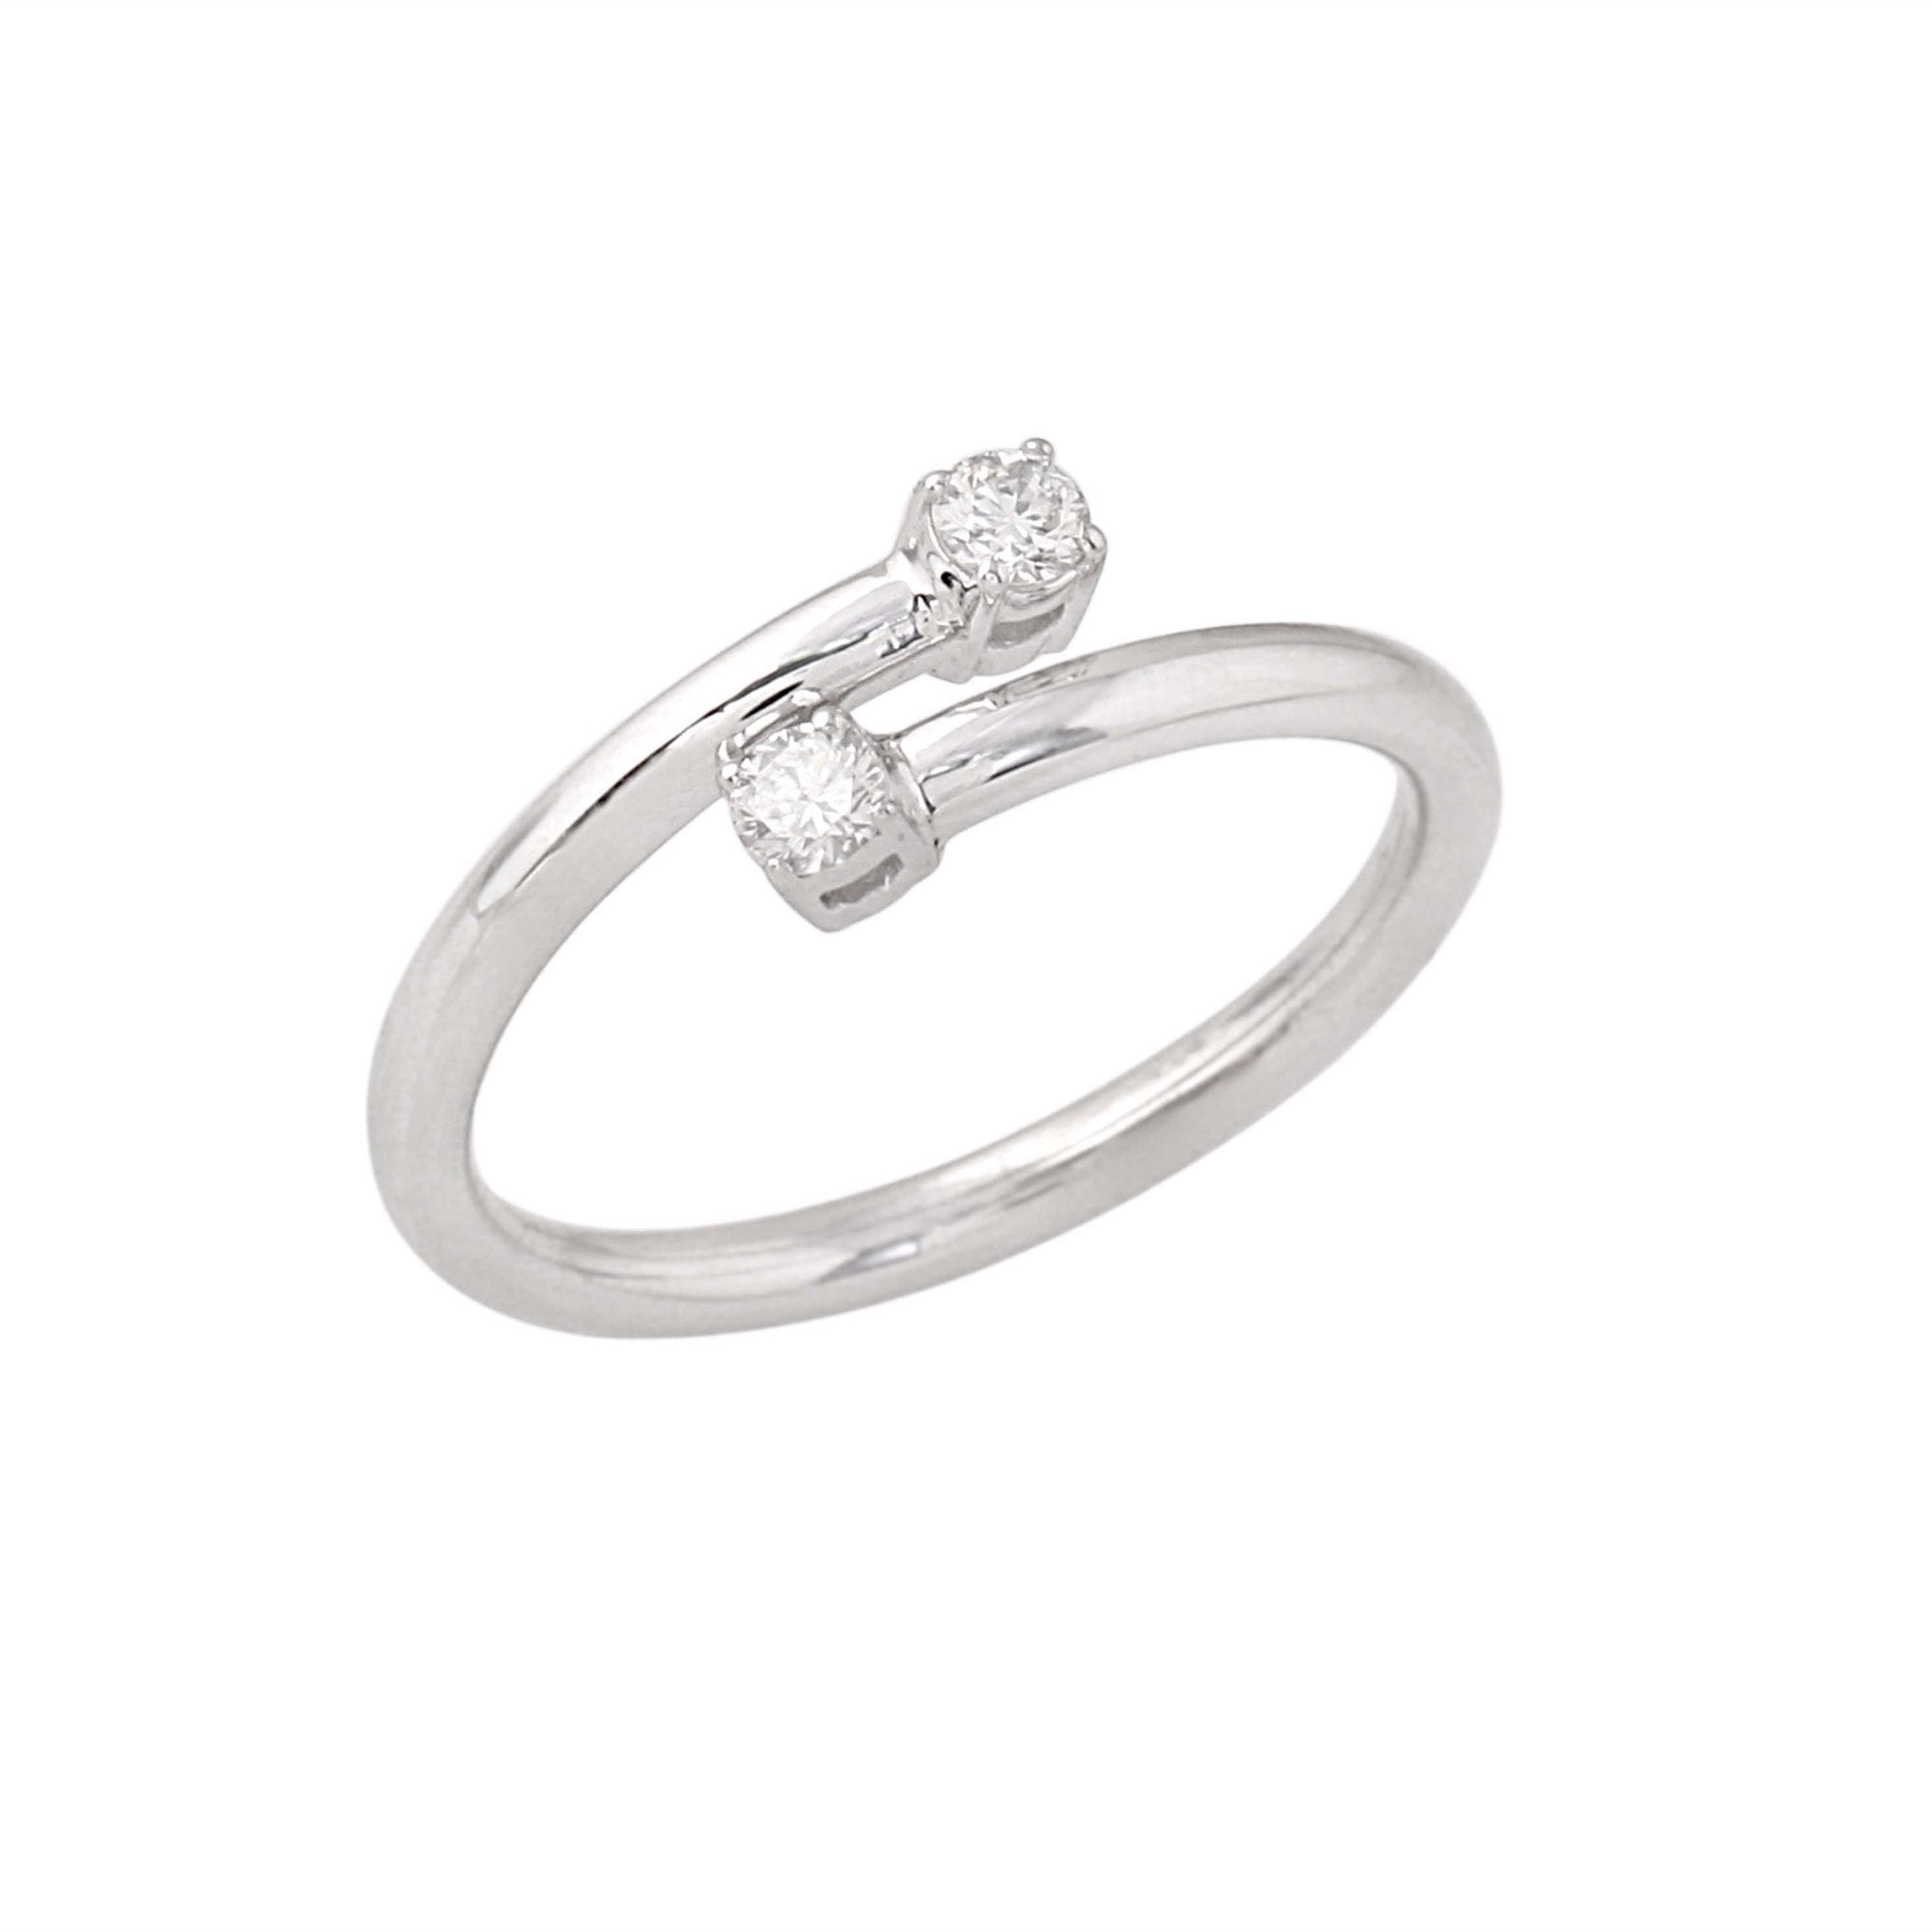 14K White Gold Flexible Diamond Ring 2 Stone